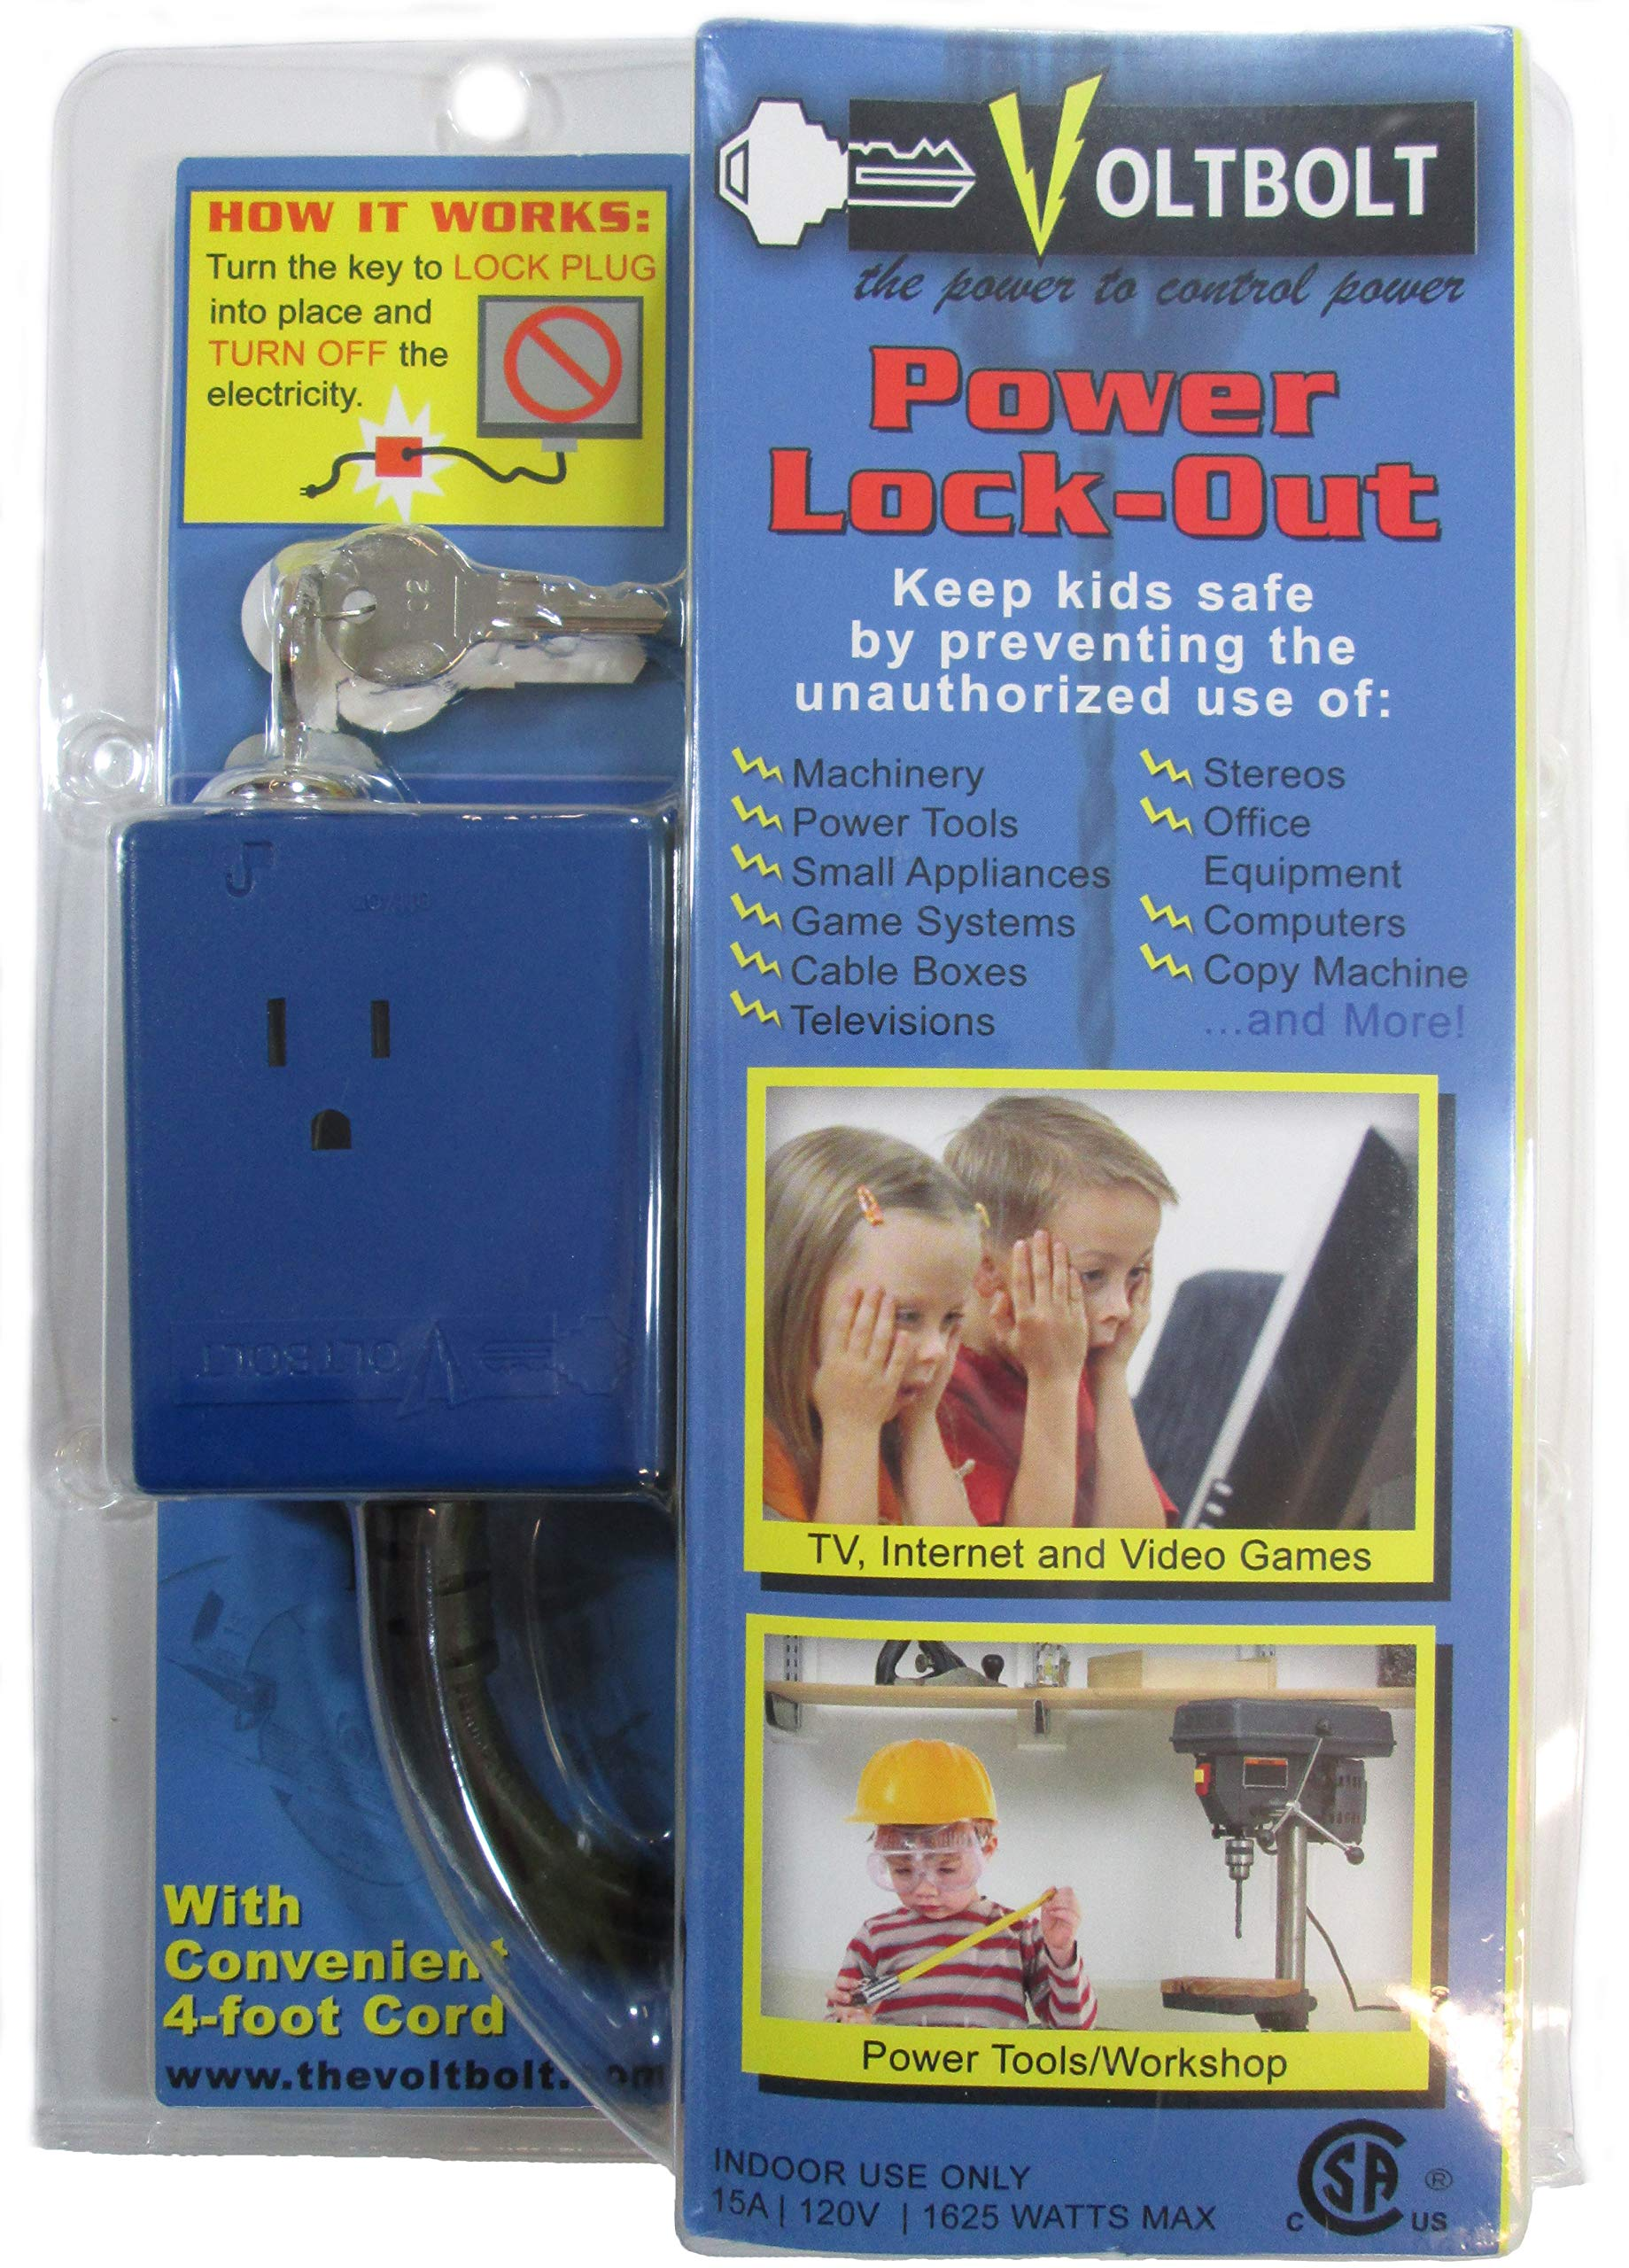 VoltBolt Power Plug Lock-Out - The Power to Control Power - Keyed Alike